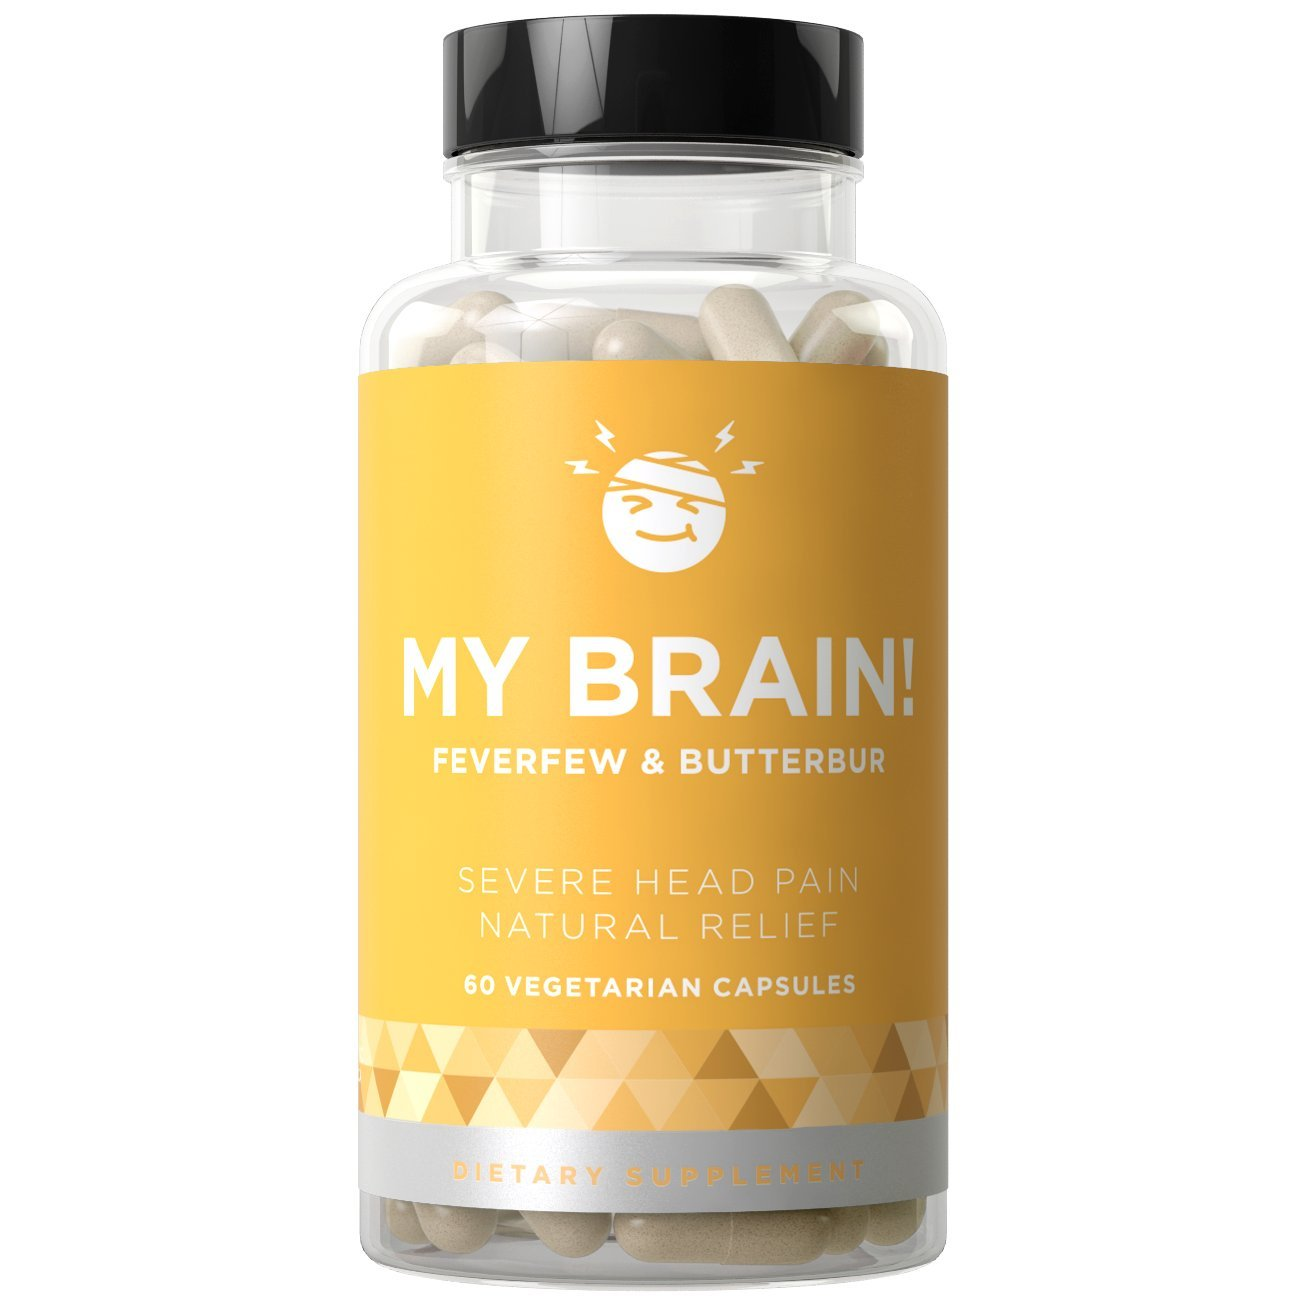 MY BRAIN! Headache & Migraine Relief - Fight Severe Pain, Nausea, and Sensitivity from Tension and Chronic Strain - Butterbur, Feverfew, Magnesium - 60 Vegetarian Soft Capsules